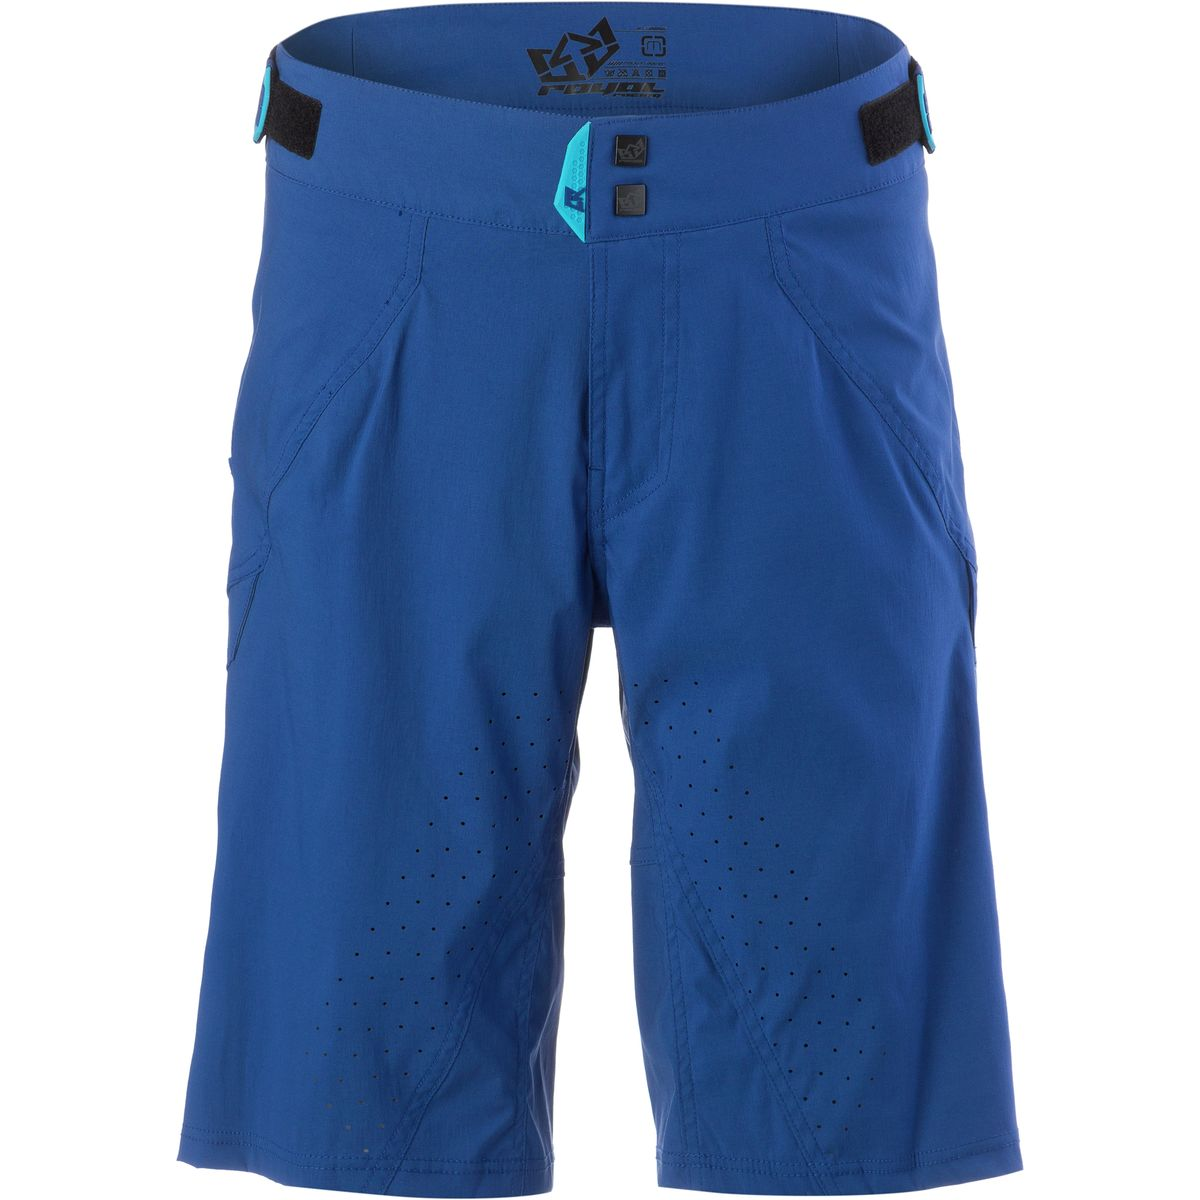 Royal Racing Drift Short Men's